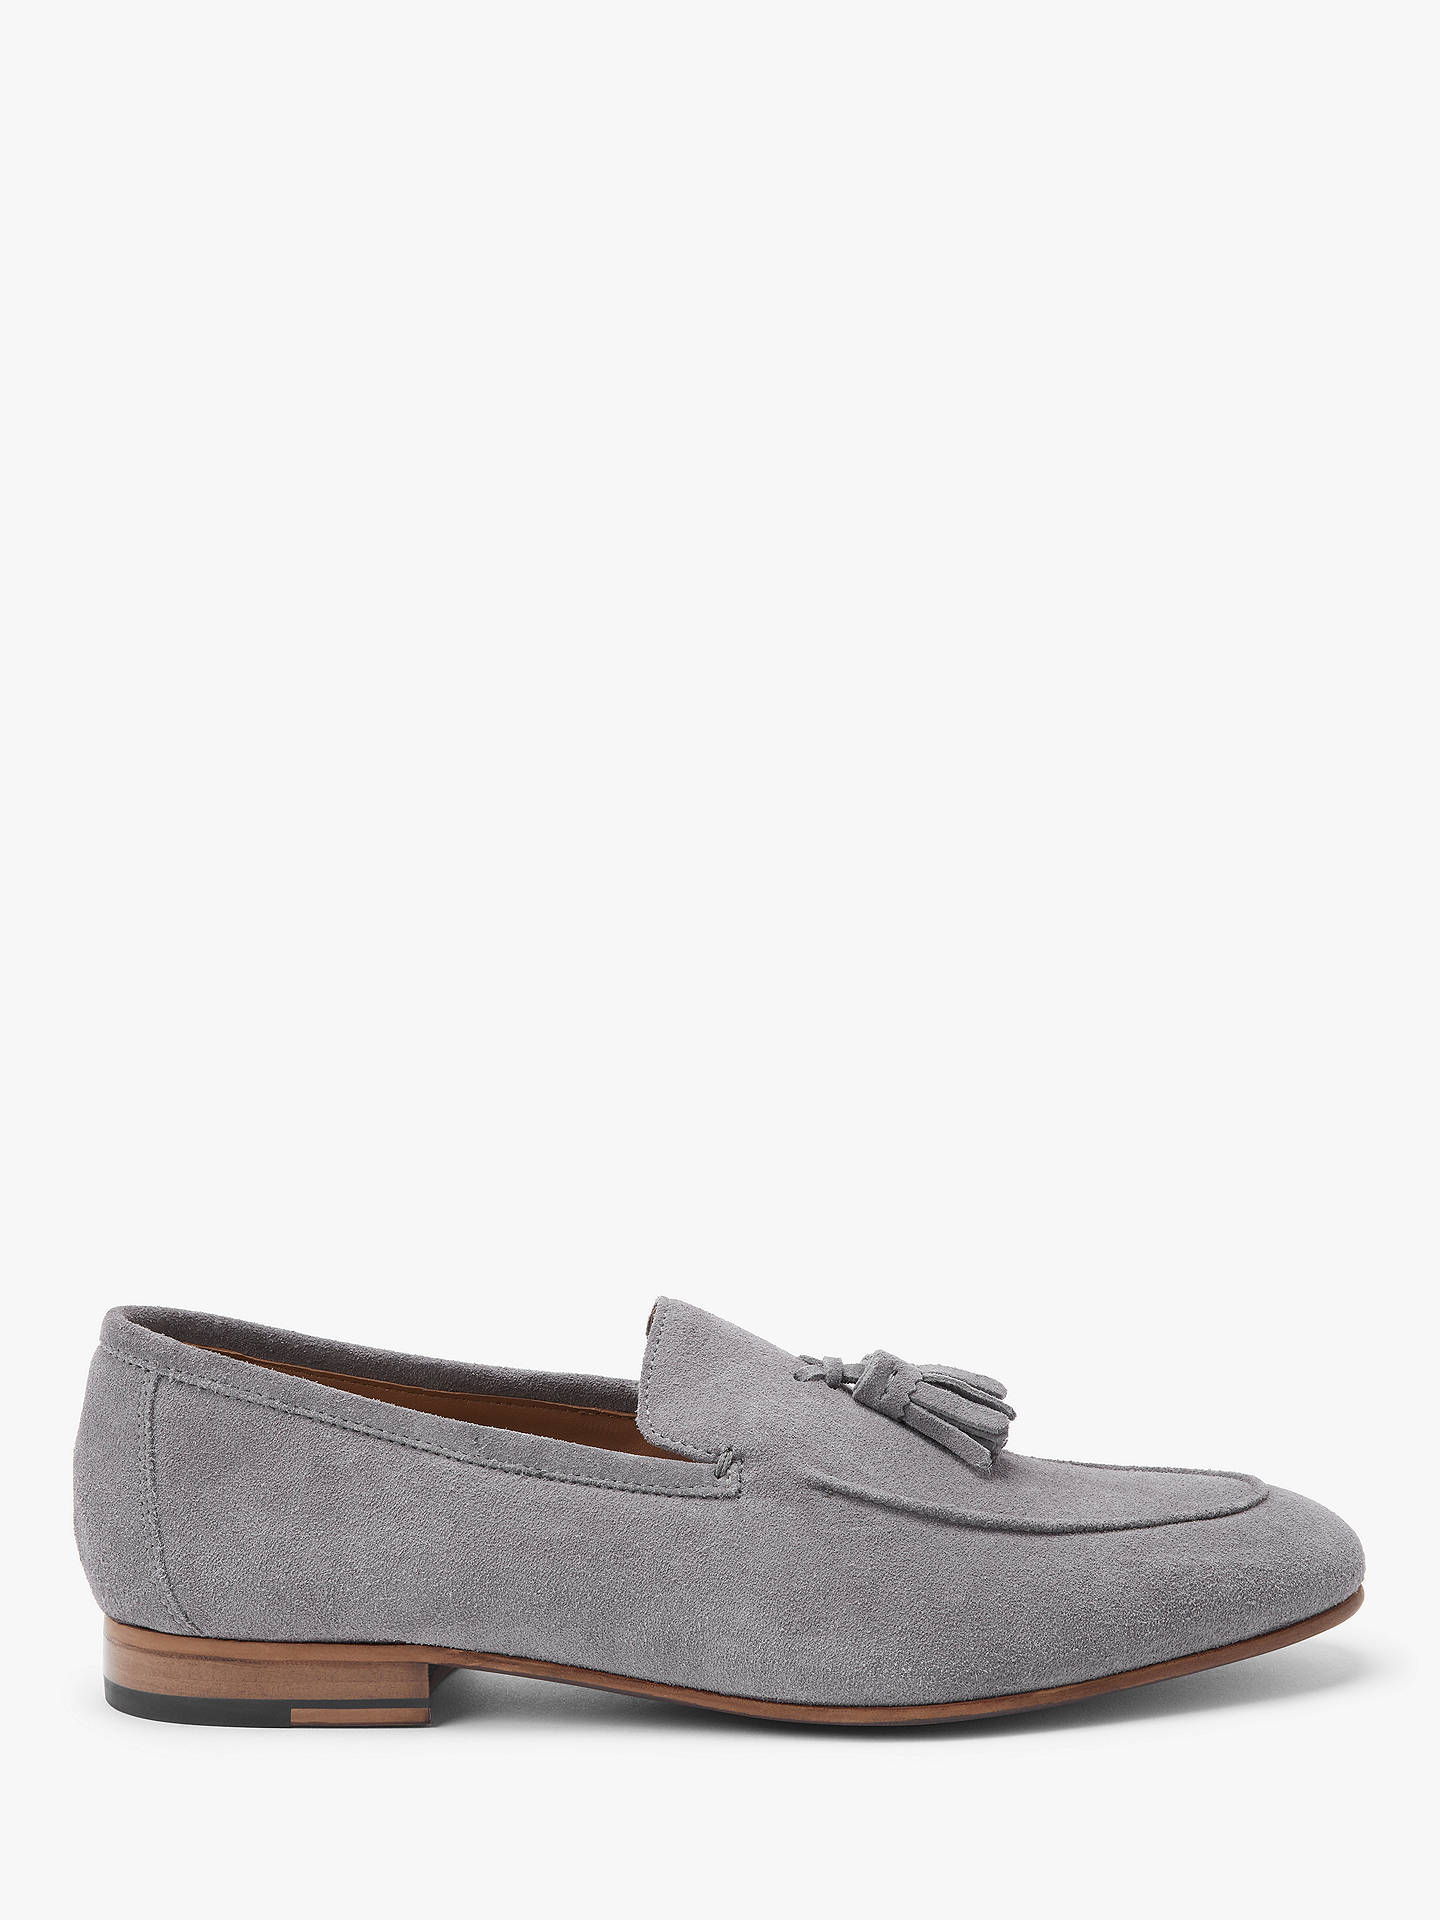 Buy John Lewis & Partners Luca Suede Tassel Loafers, Ash, 7 Online at johnlewis.com